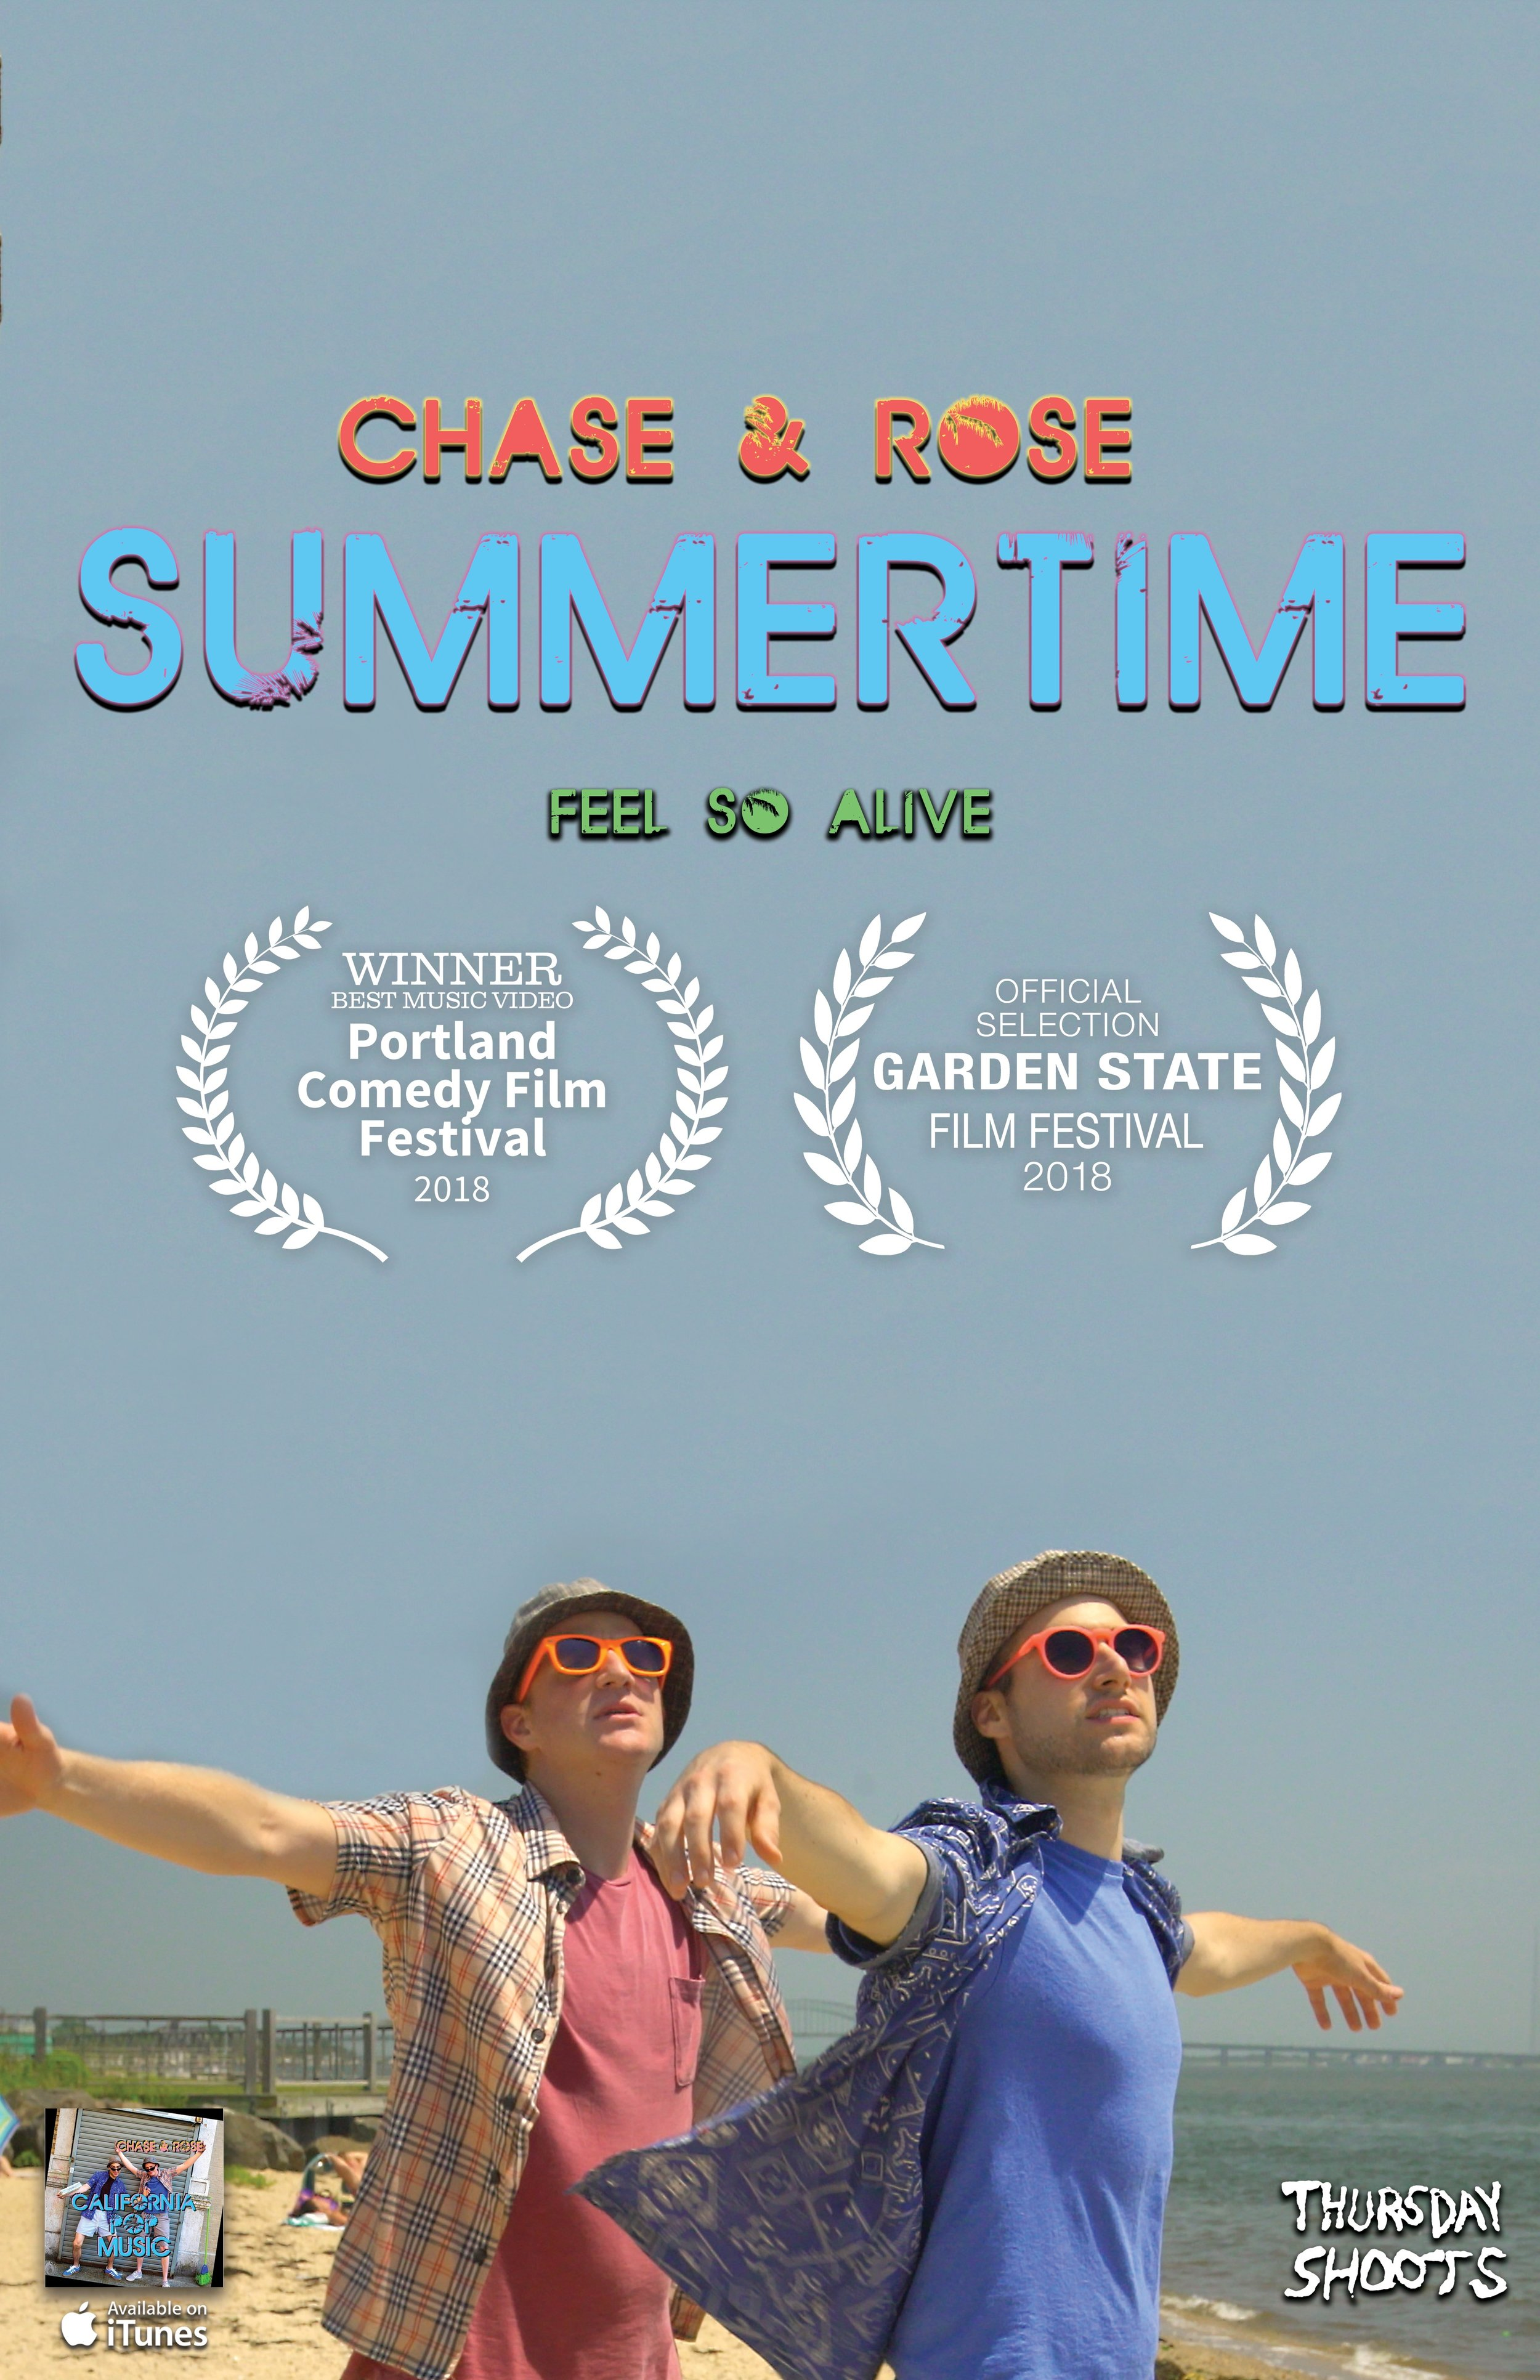 Summertime Poster_with laurels.jpg